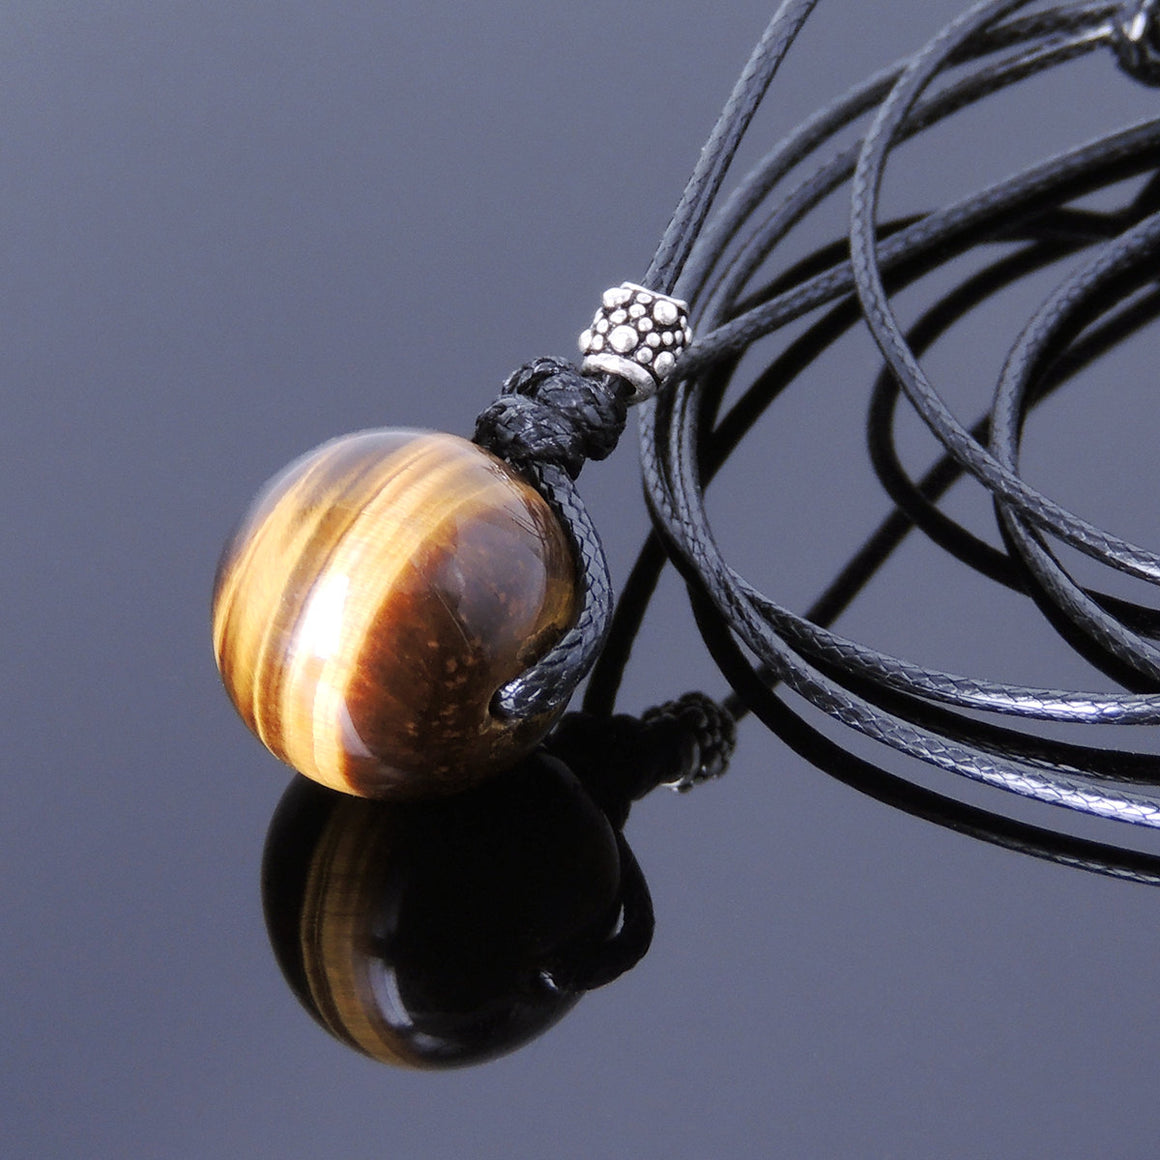 14mm Brown Tiger Eye Adjustable Wax Rope Necklace with S925 Sterling Silver Barrel Bead - Handmade by Gem & Silver NK052